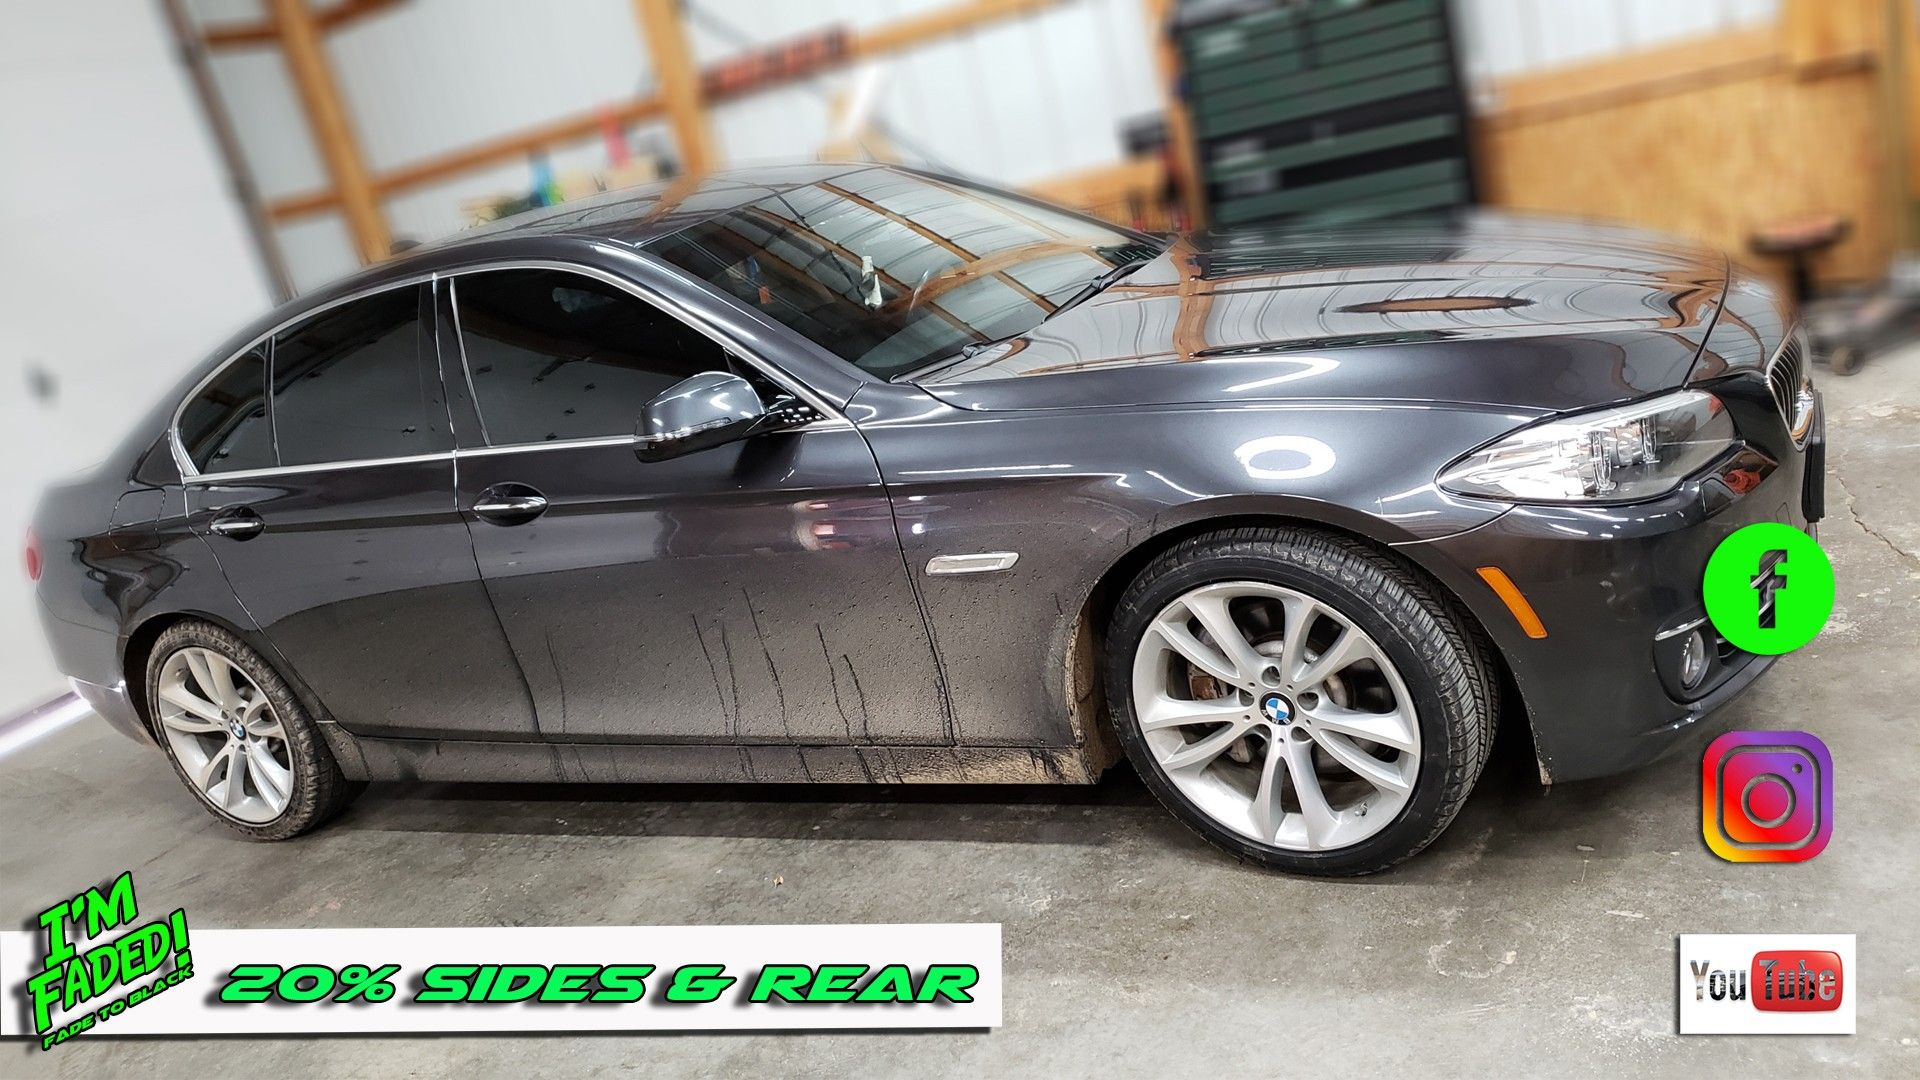 535d With 20 Sides And Rear With Images Fade To Black Bimmer